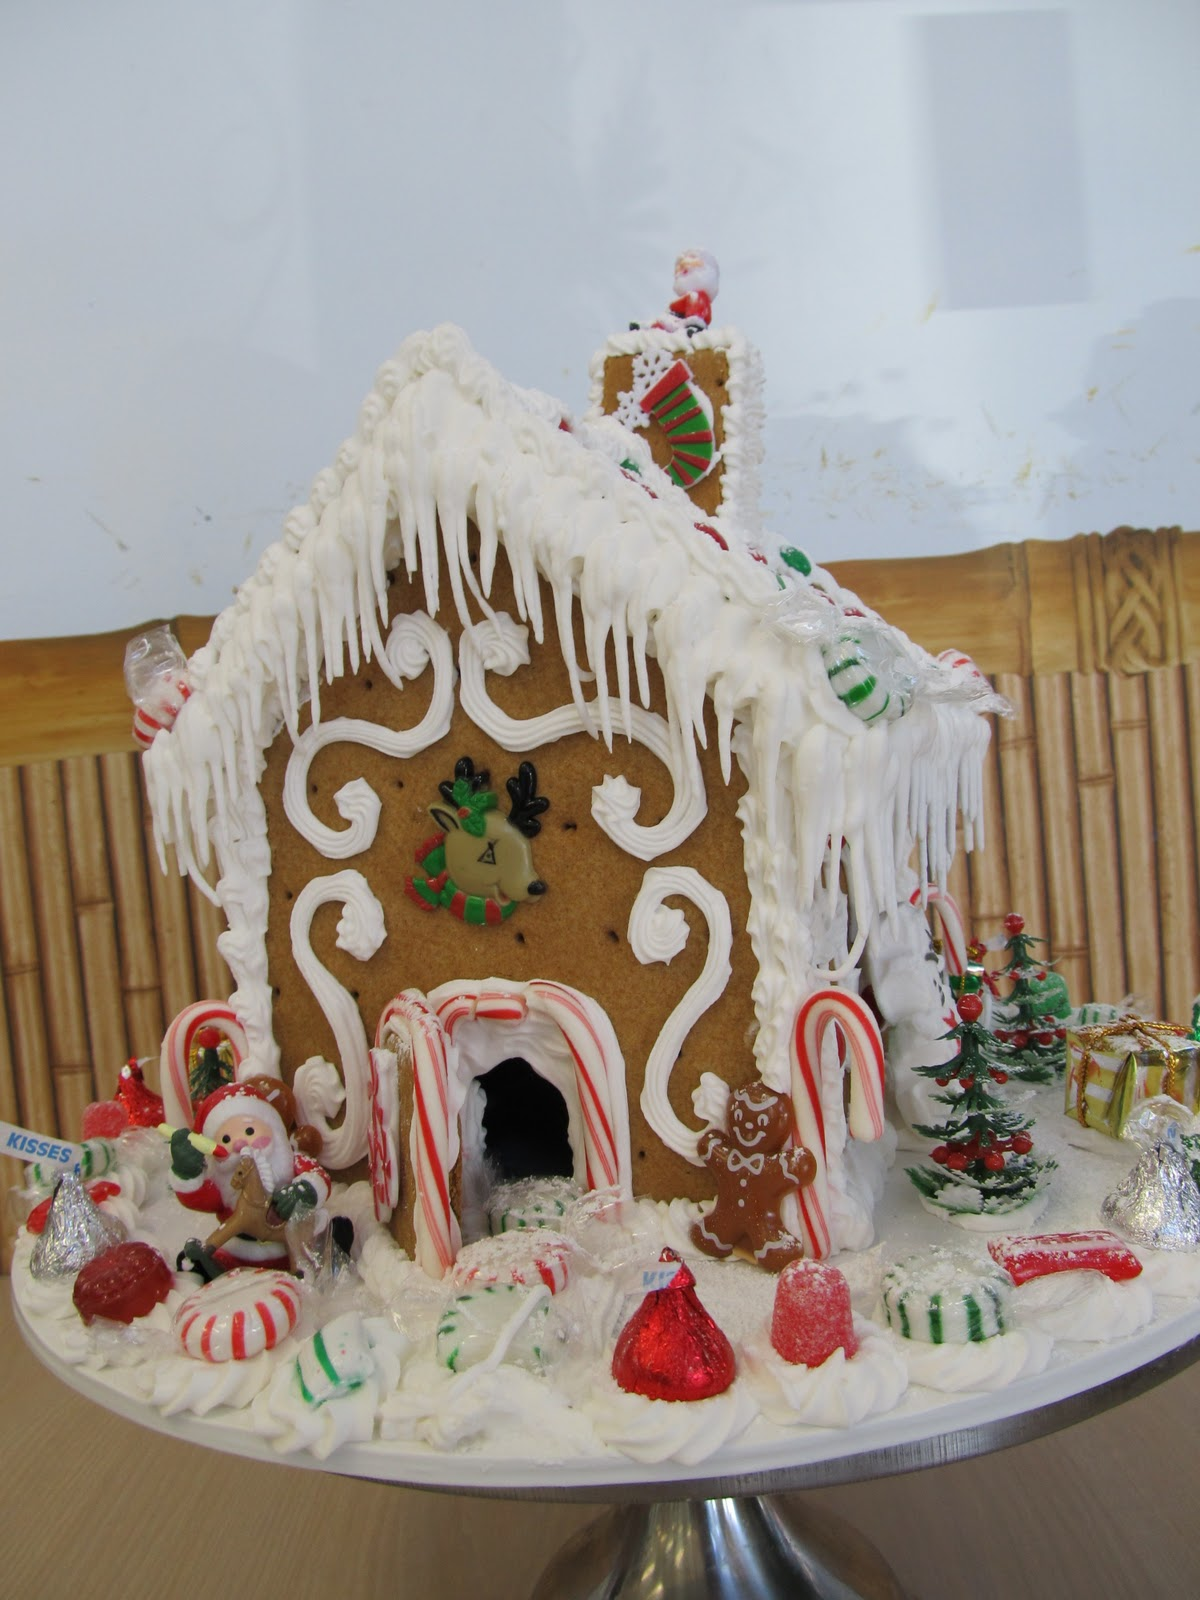 Ontario Bakery: Build your own Gingerbread house!!!!